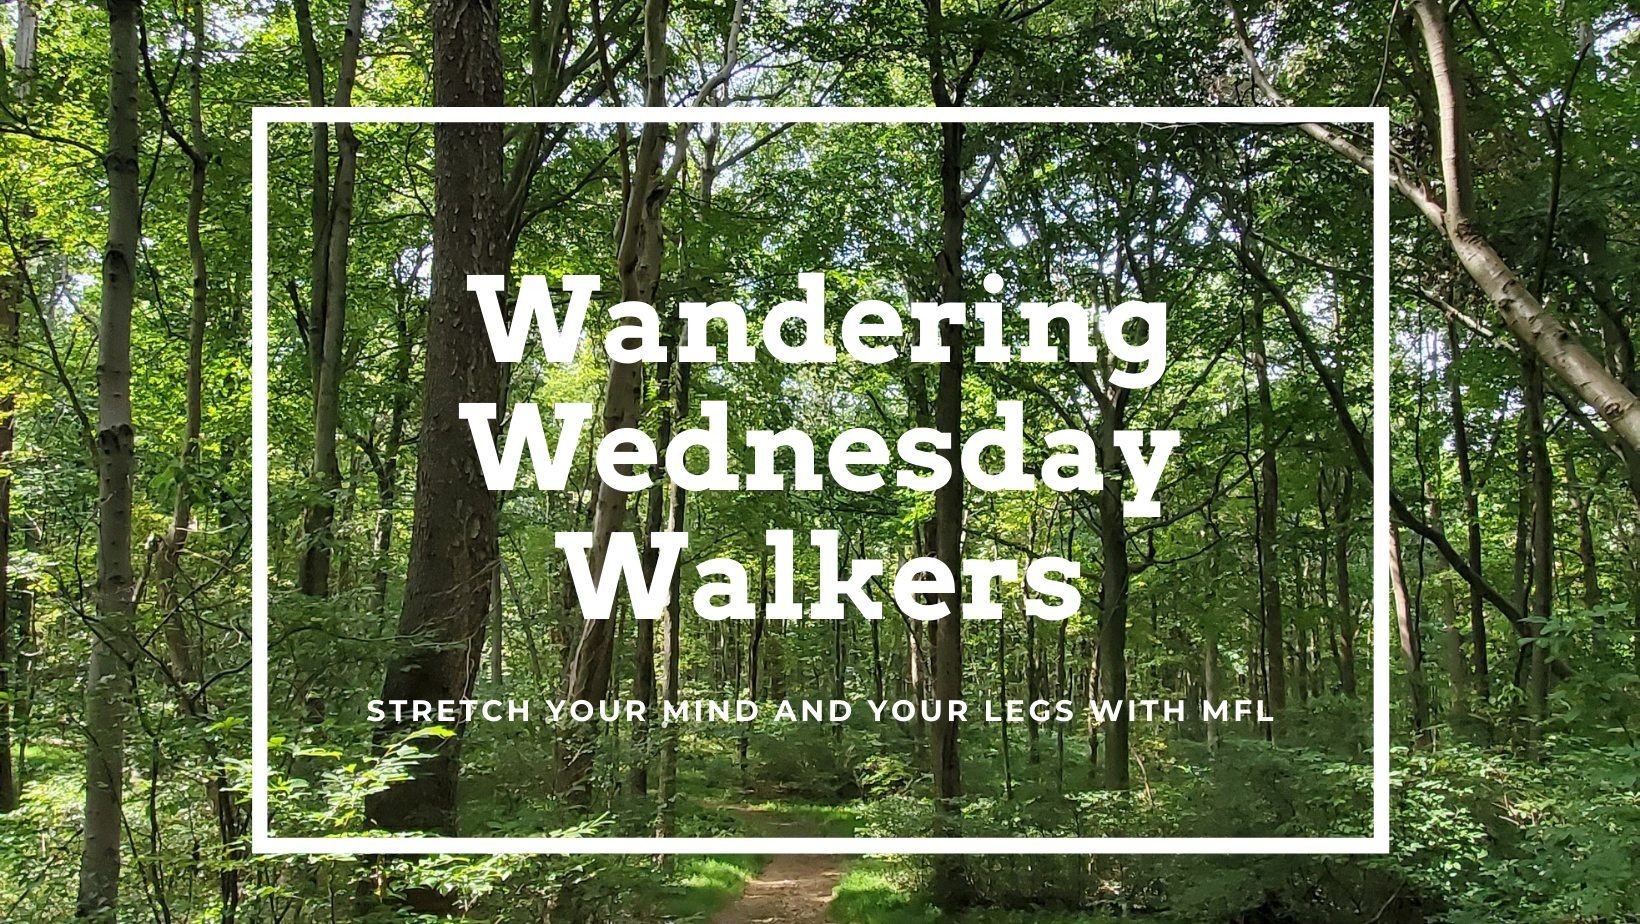 Wandering Wednesday Walkers